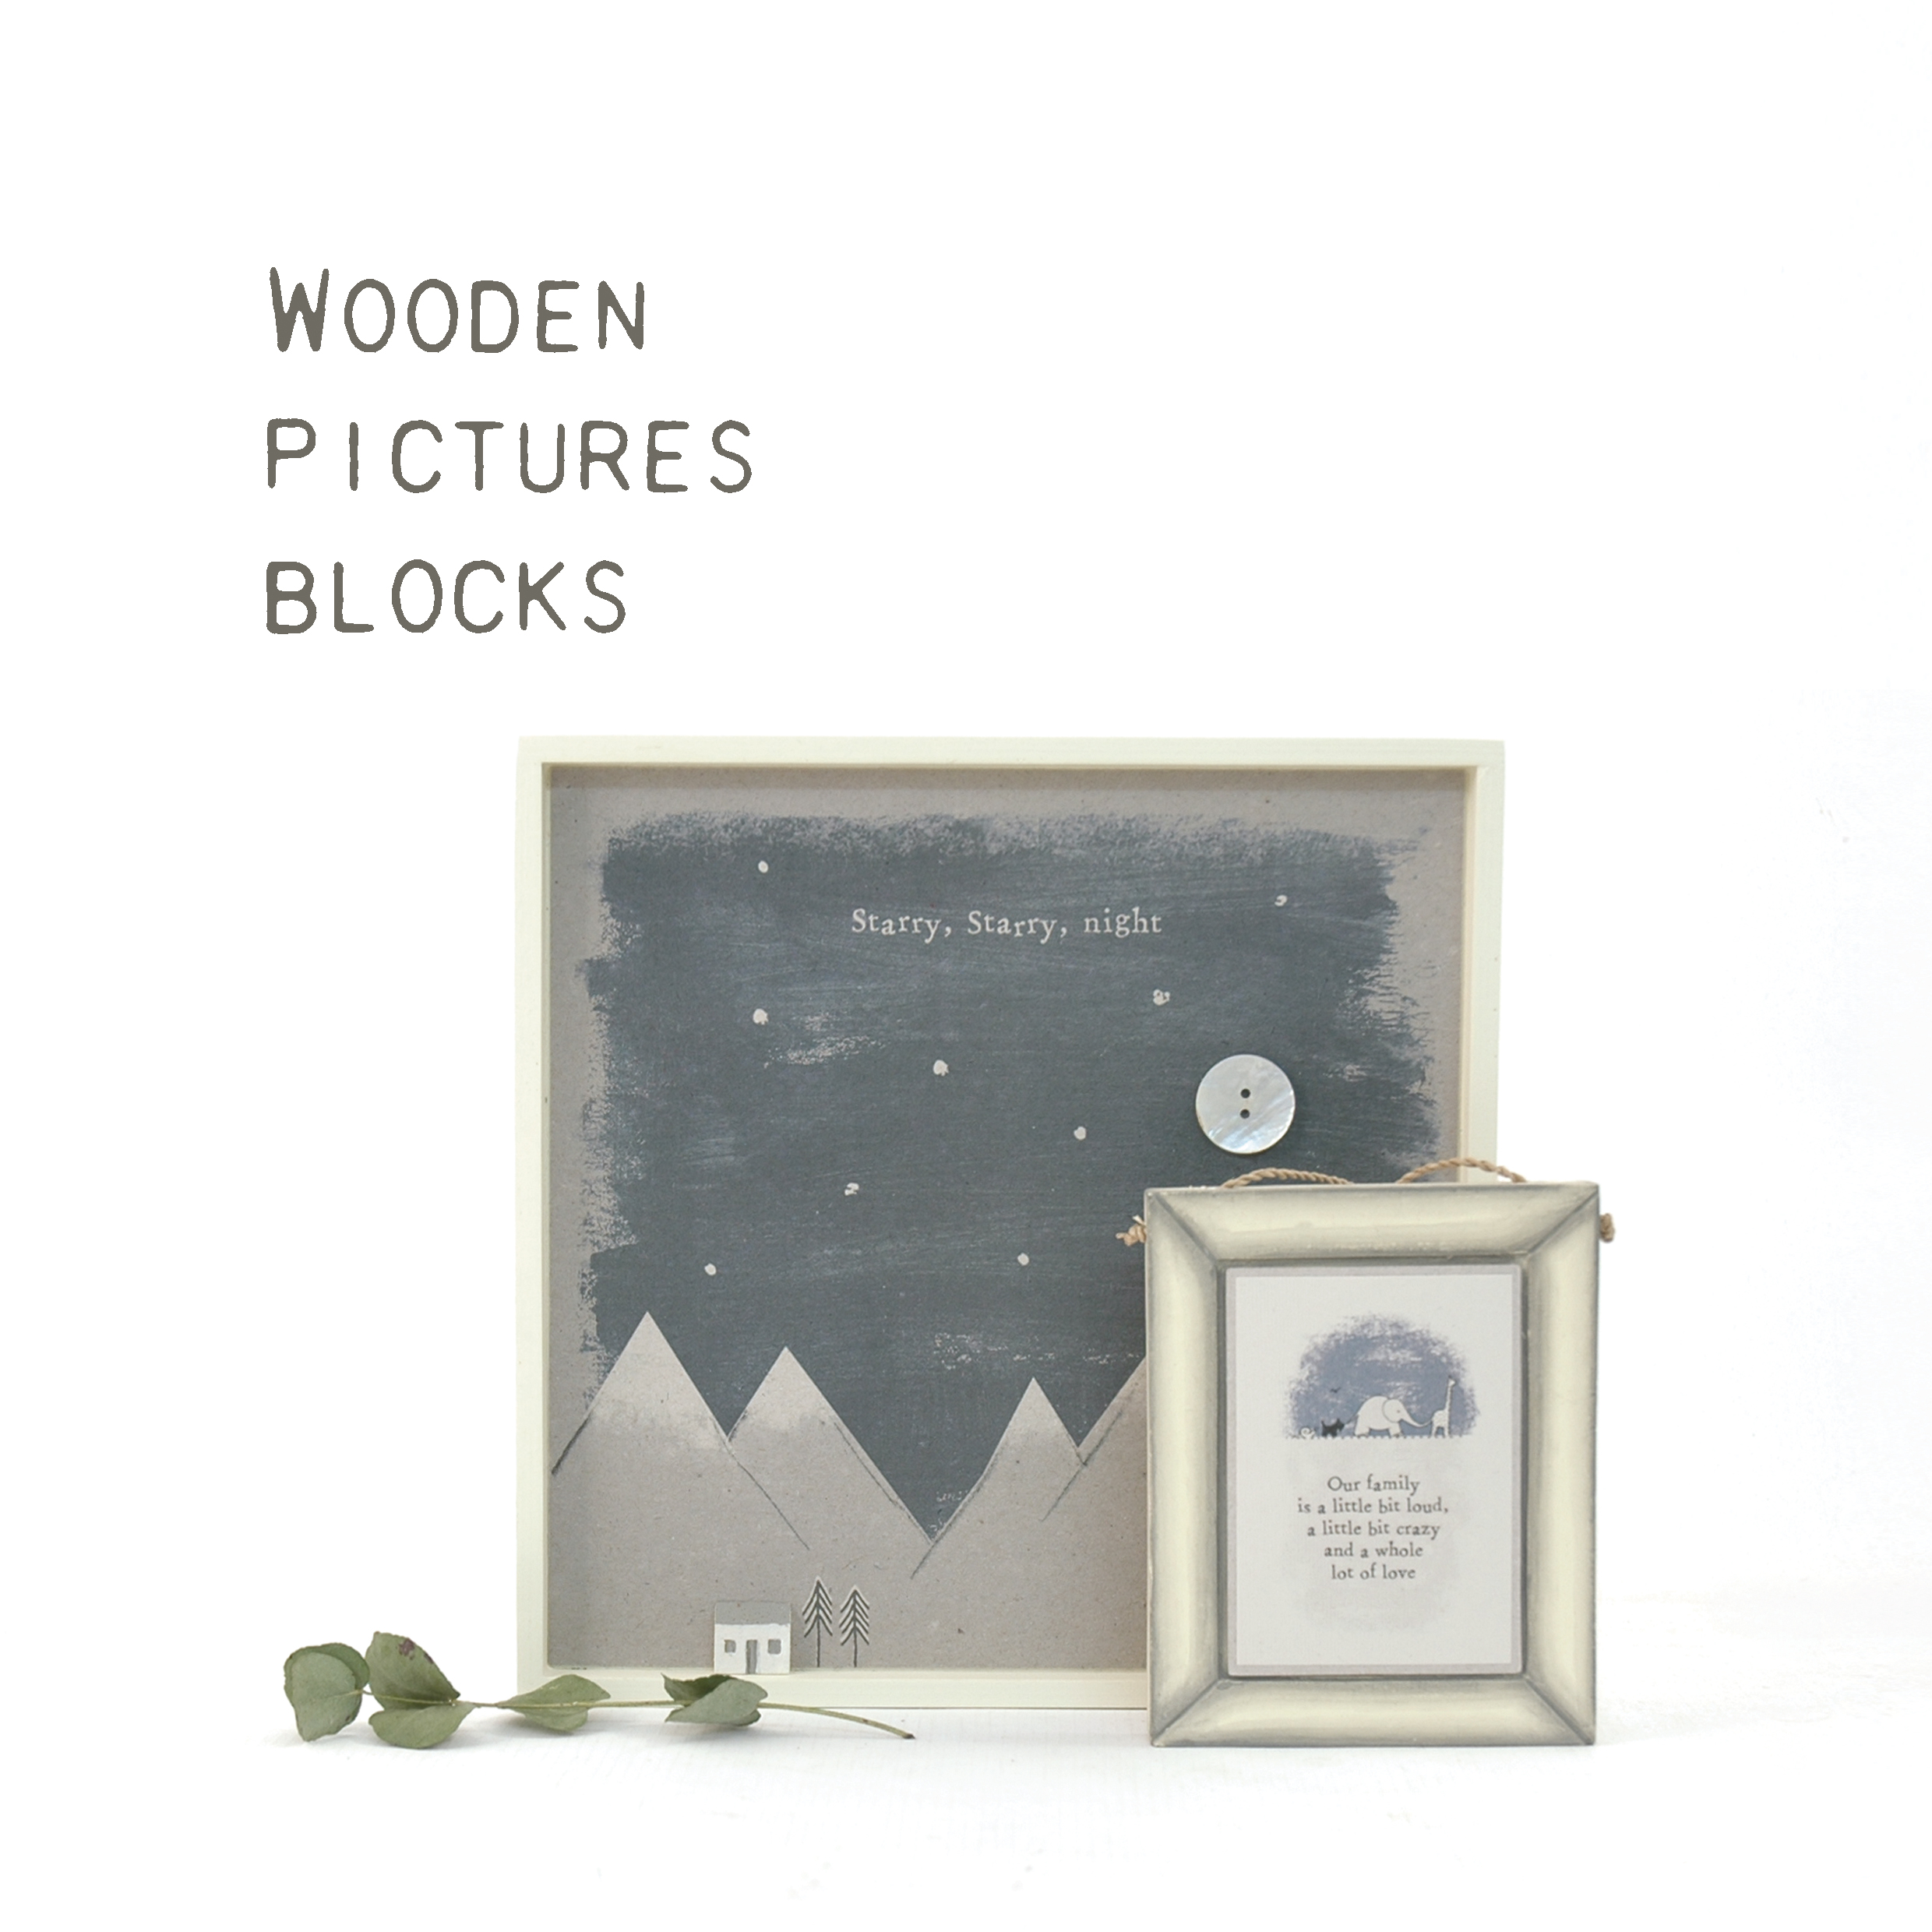 Pictures & Wooden blocks